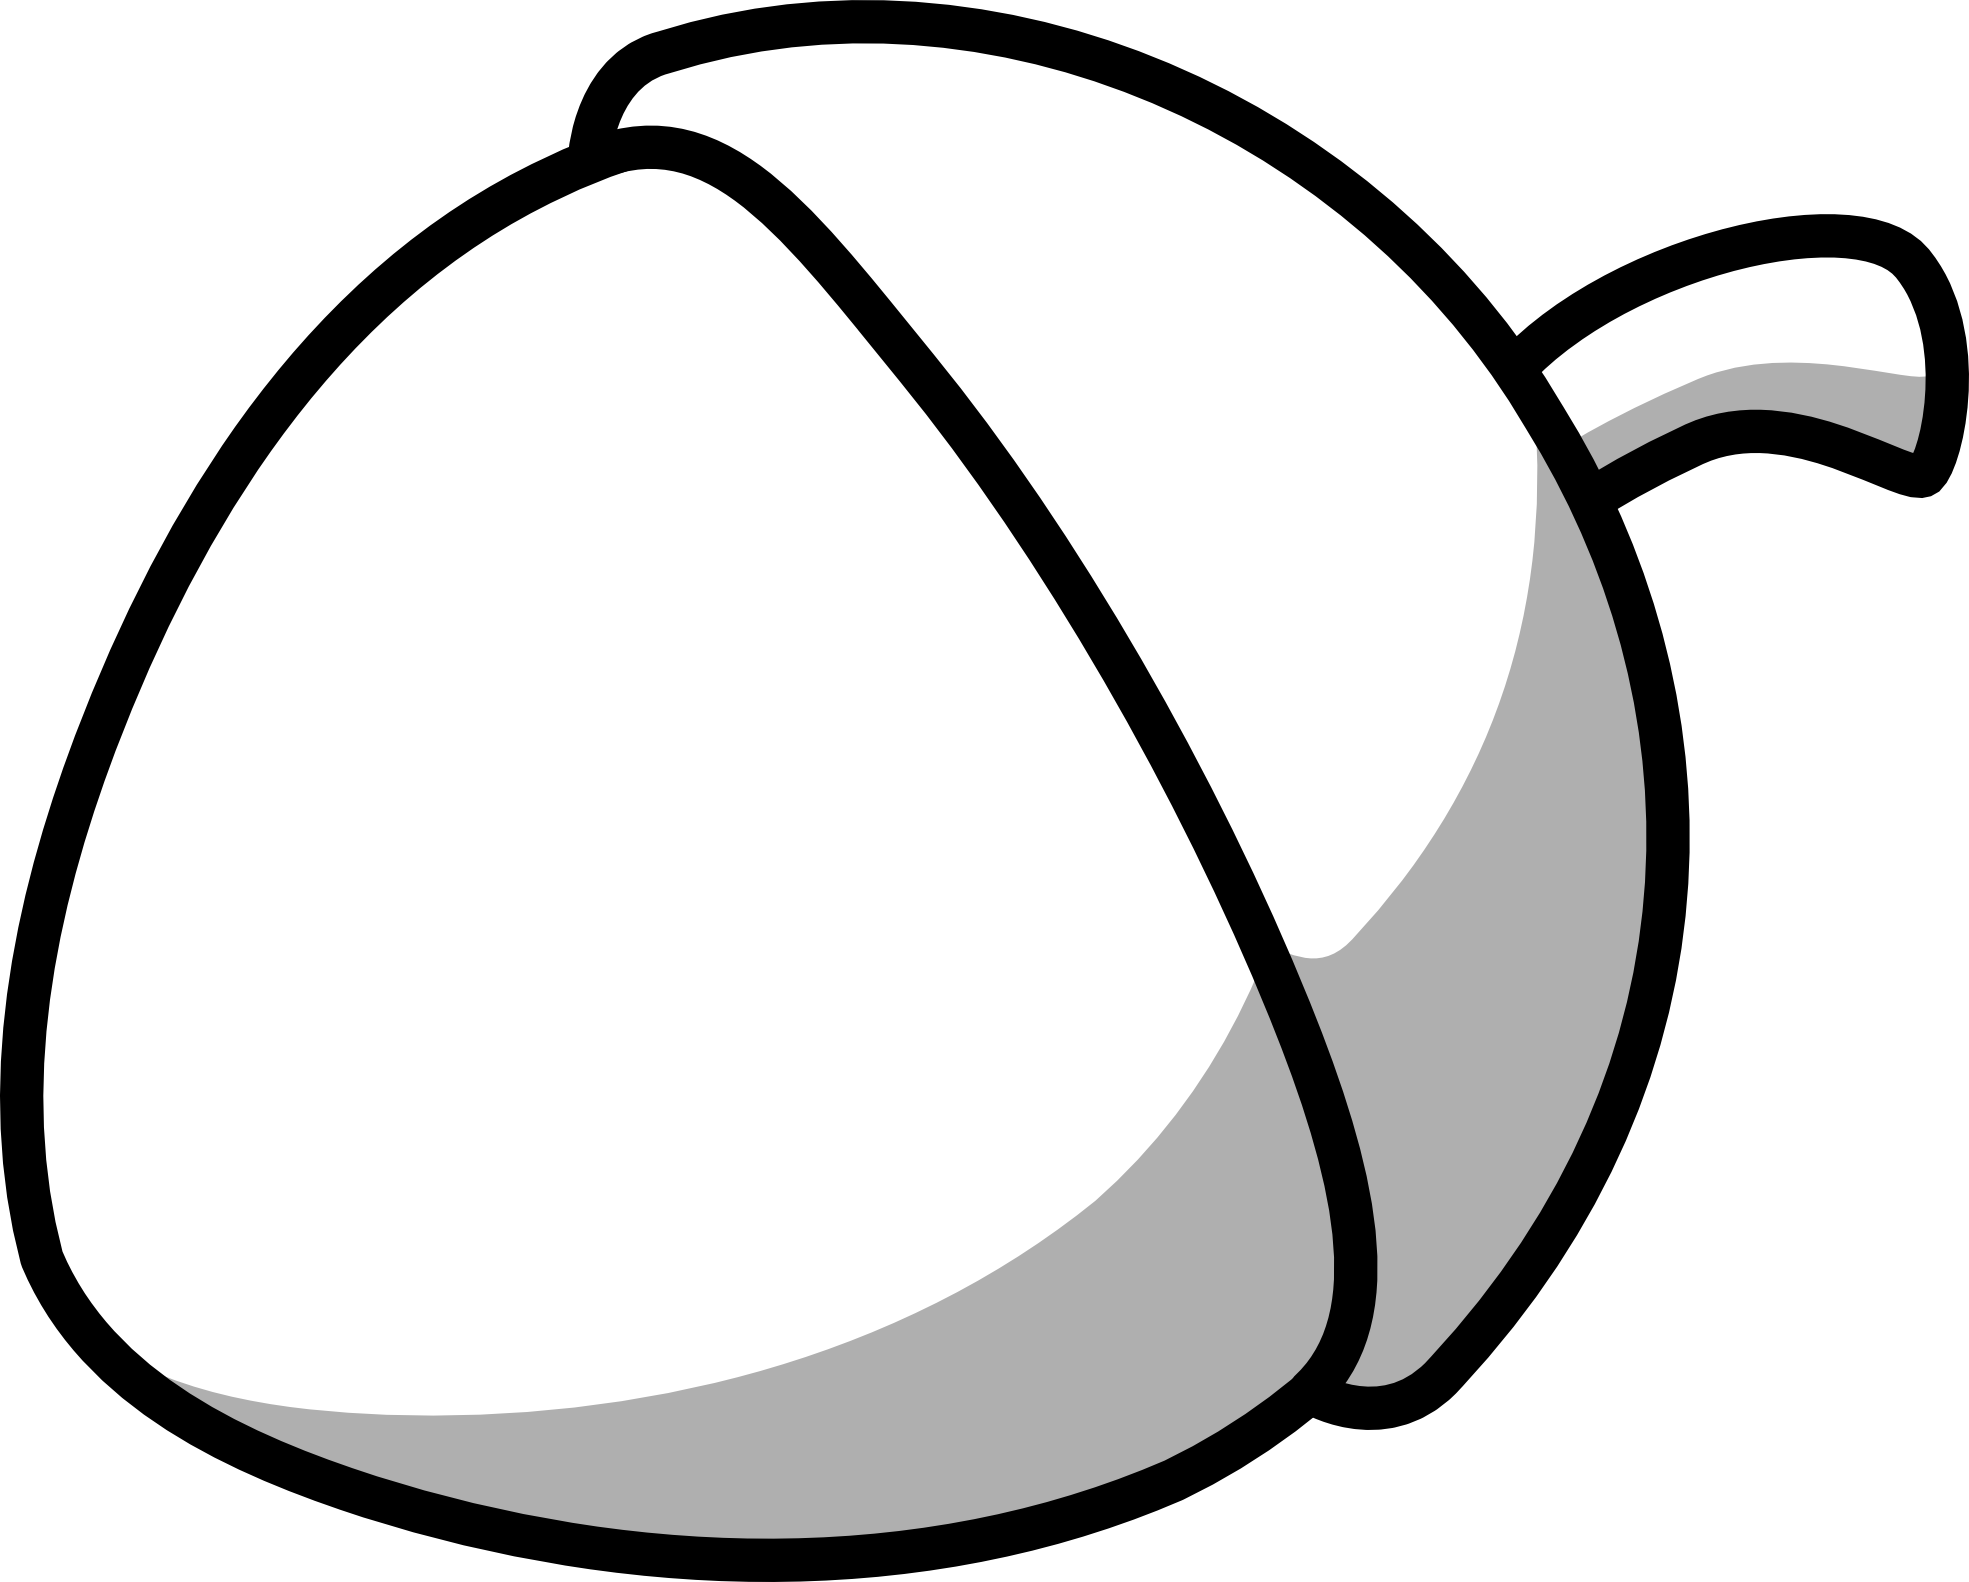 Acorn clipart animated. Black and white panda